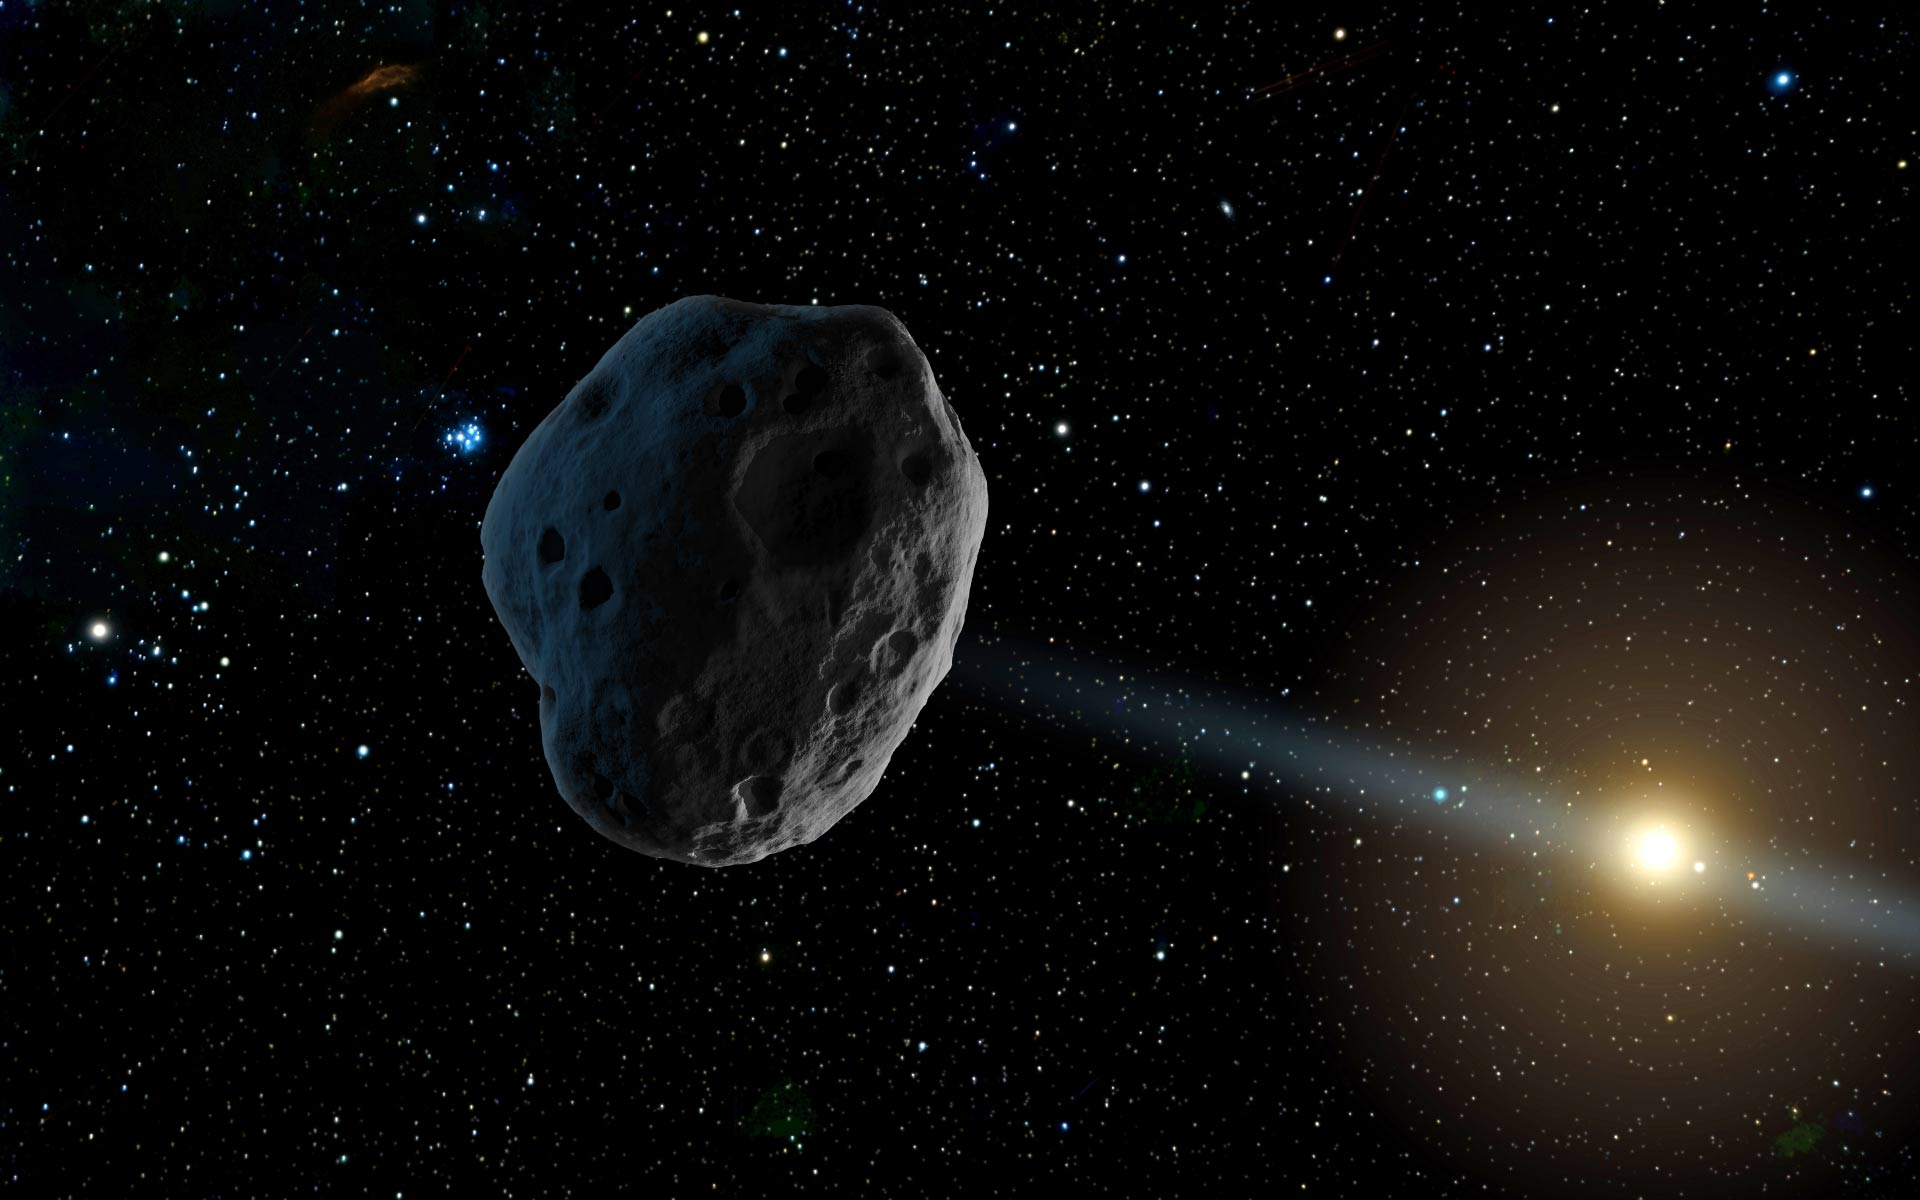 Near earth objects and amateur astronomy